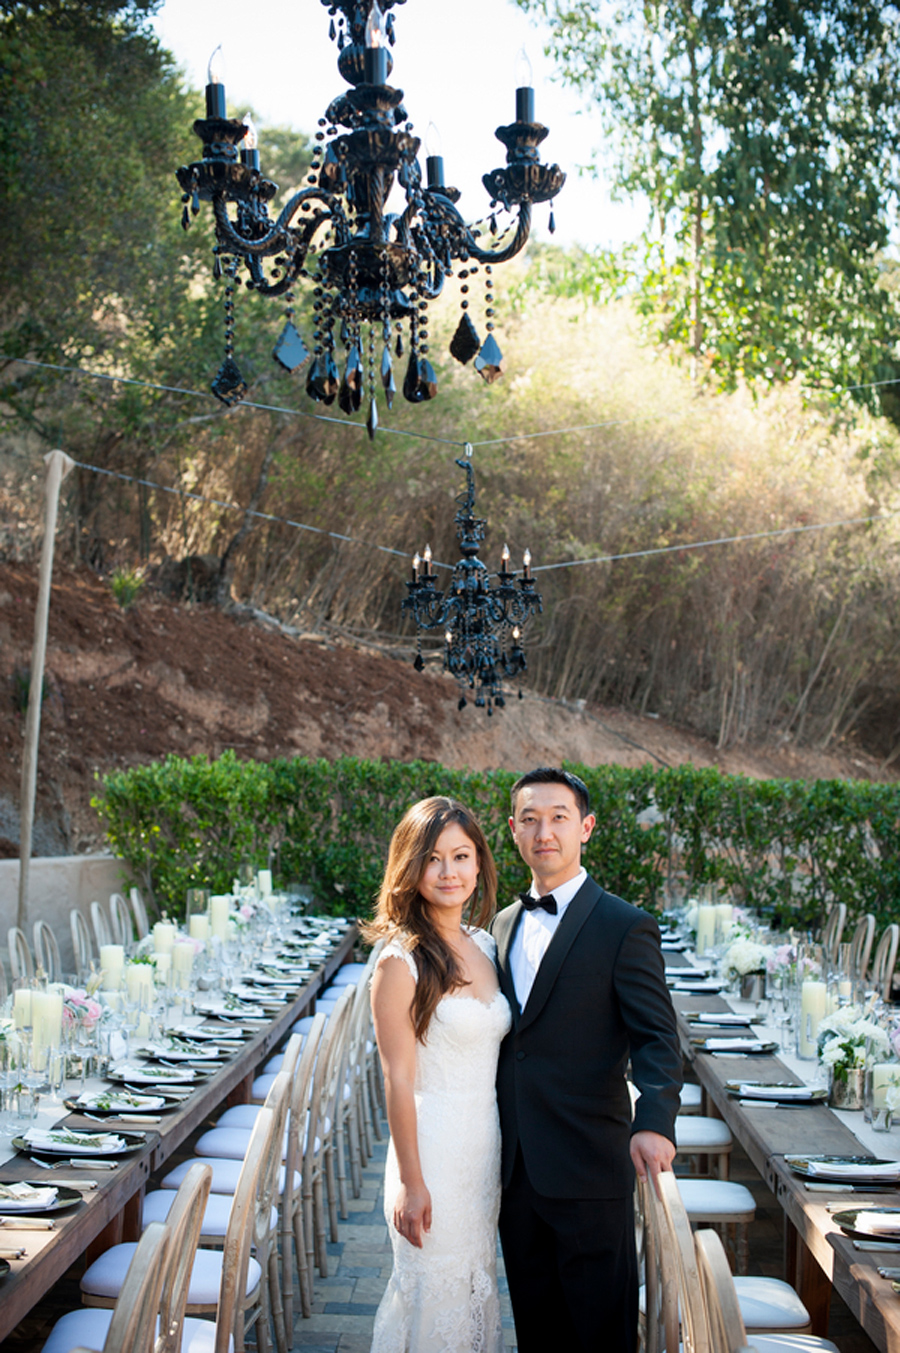 Savvy Deets Bridal: {Real Weddings} Josephine & Erick\'s Elegant ...